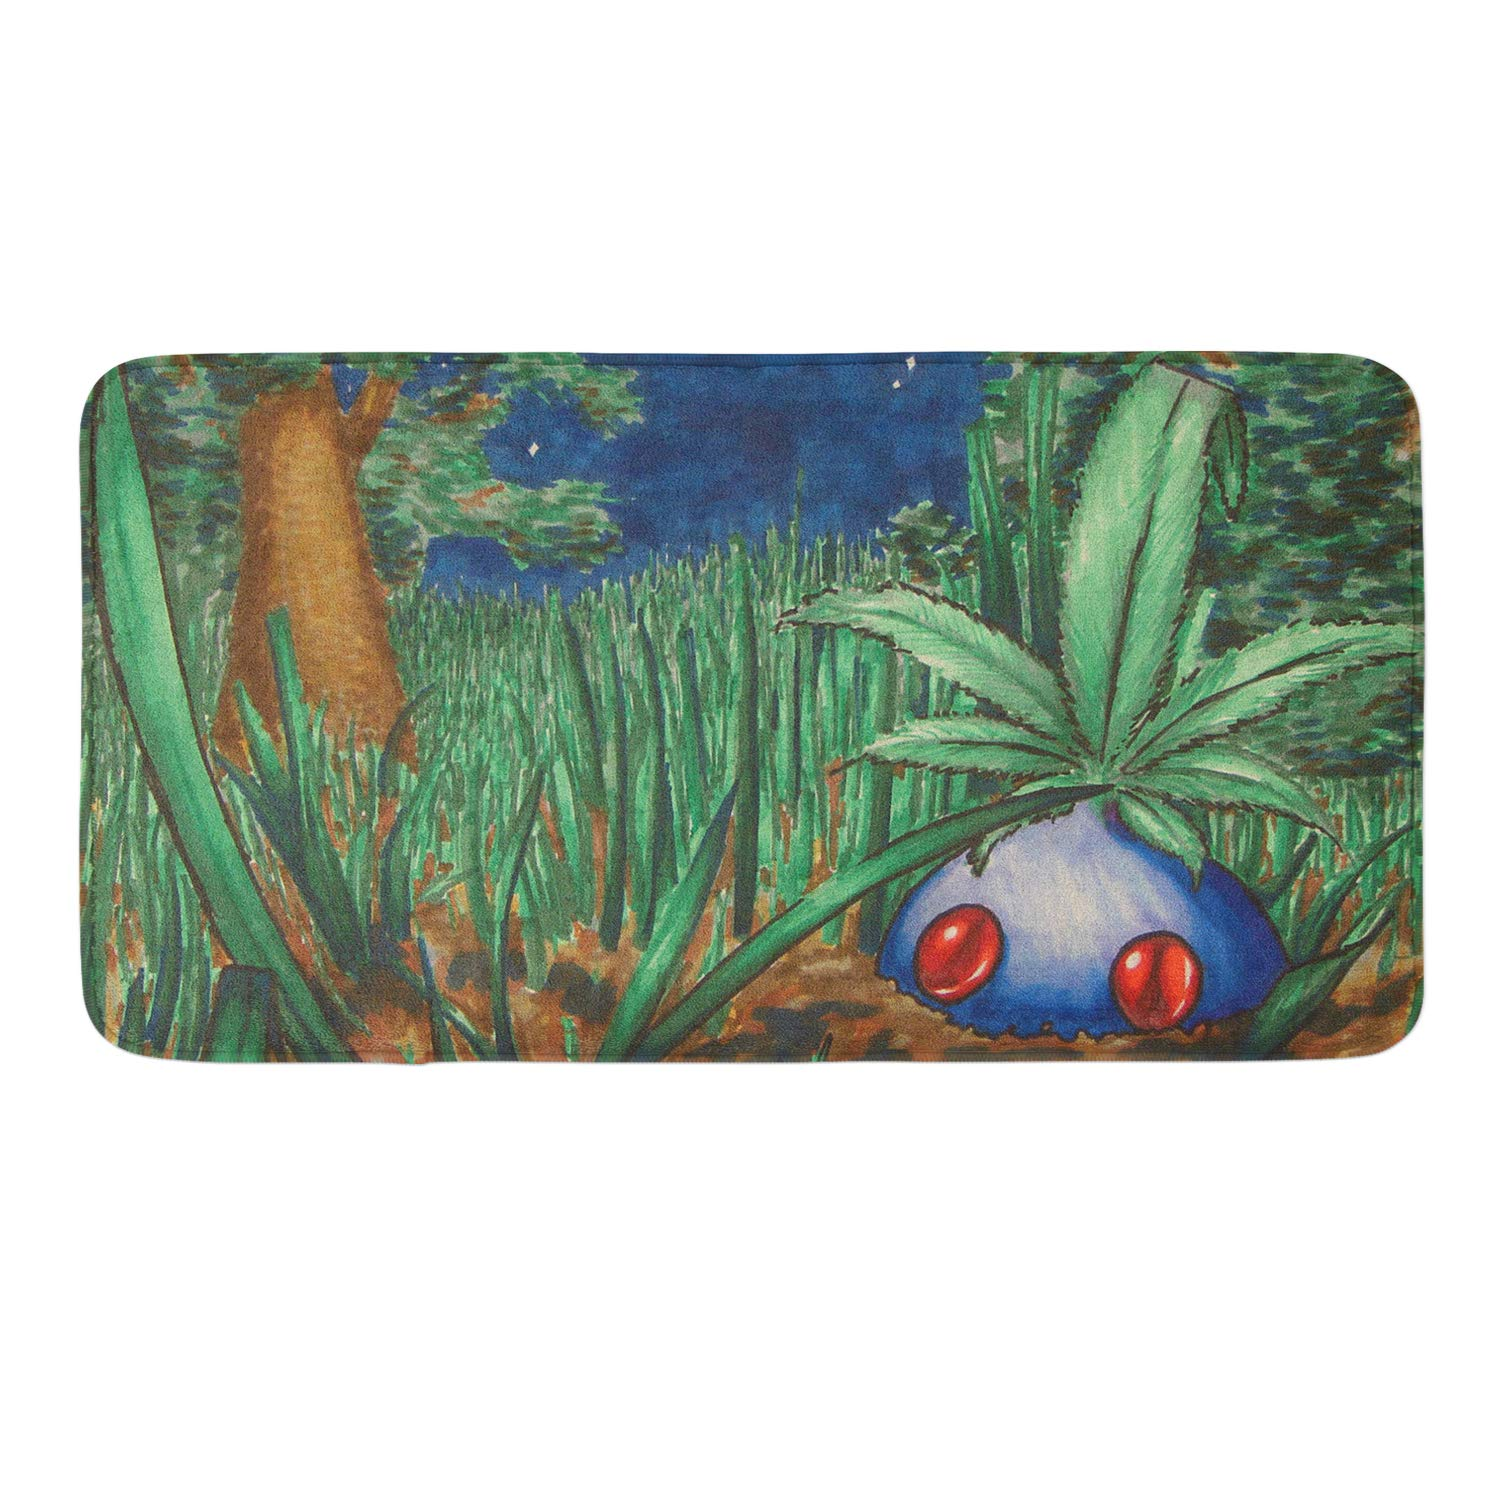 CIGOCI Non-Slip Memory Foam Bathroom Mat - 18x36 Inch, Extra Absorbent,Soft,Duarable and Quick-Dry Shaggy Mat, 3D PrintDrawn Weed Pokemon